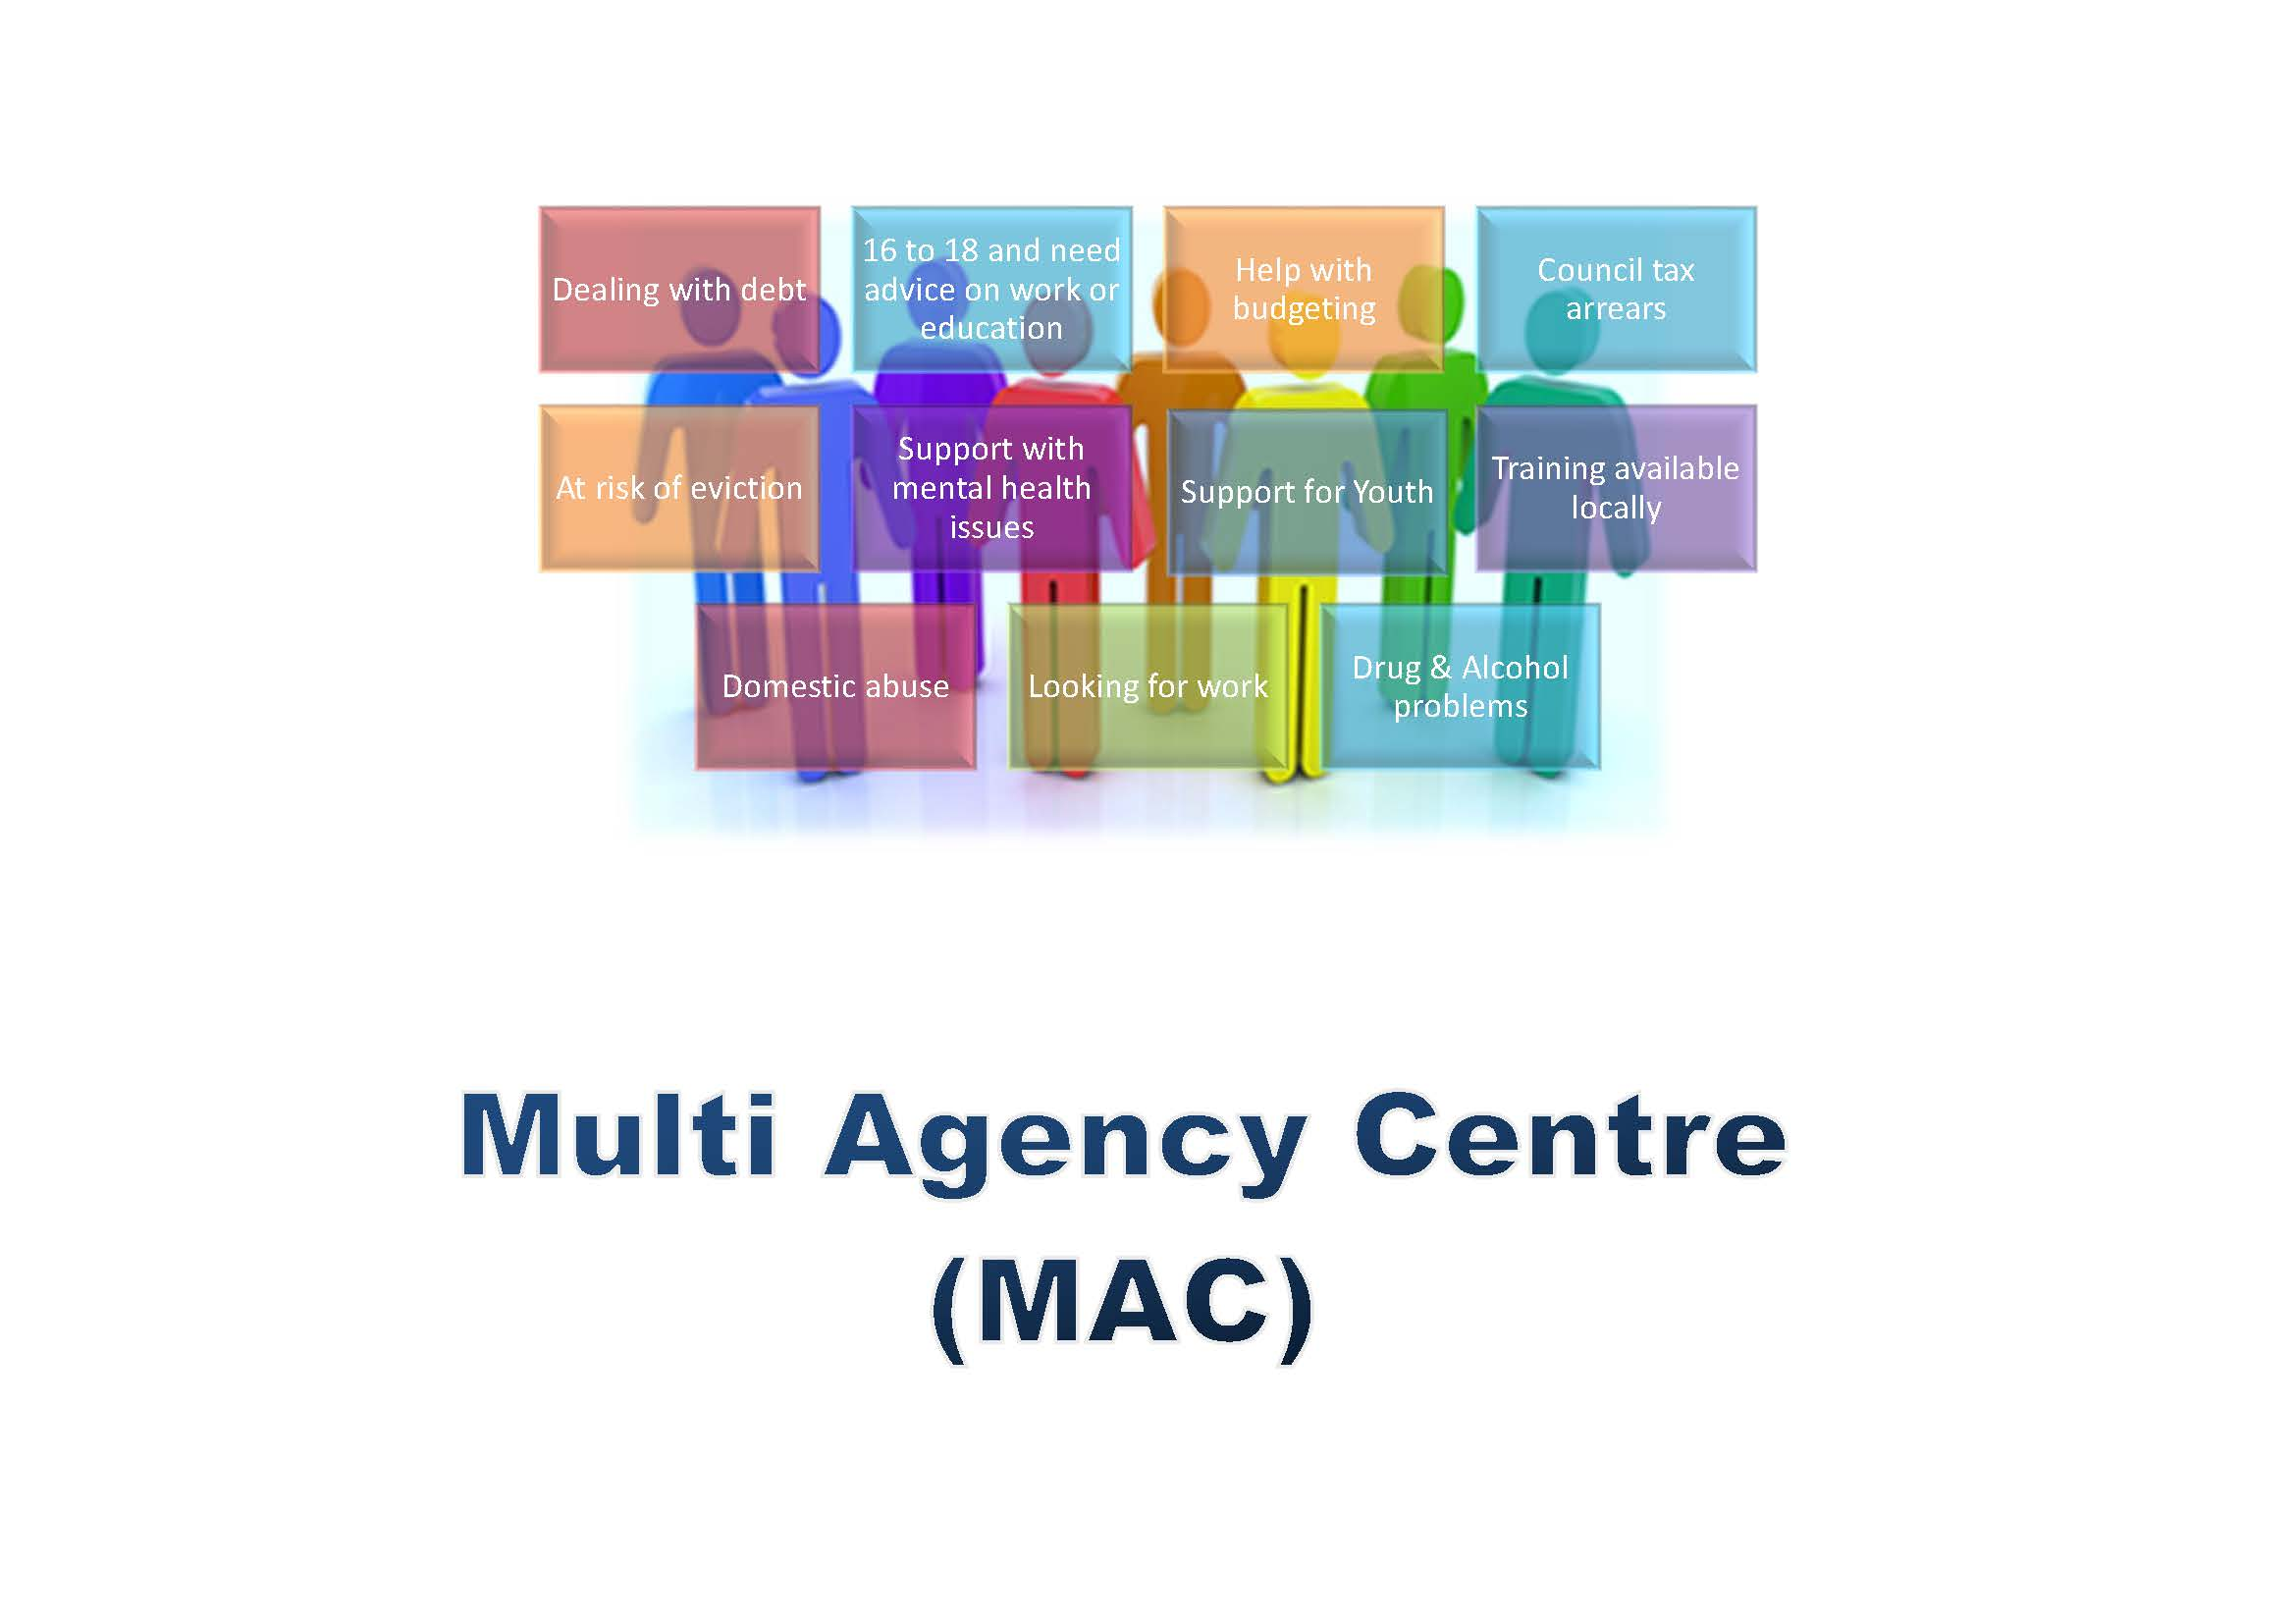 Multi Agency Centre